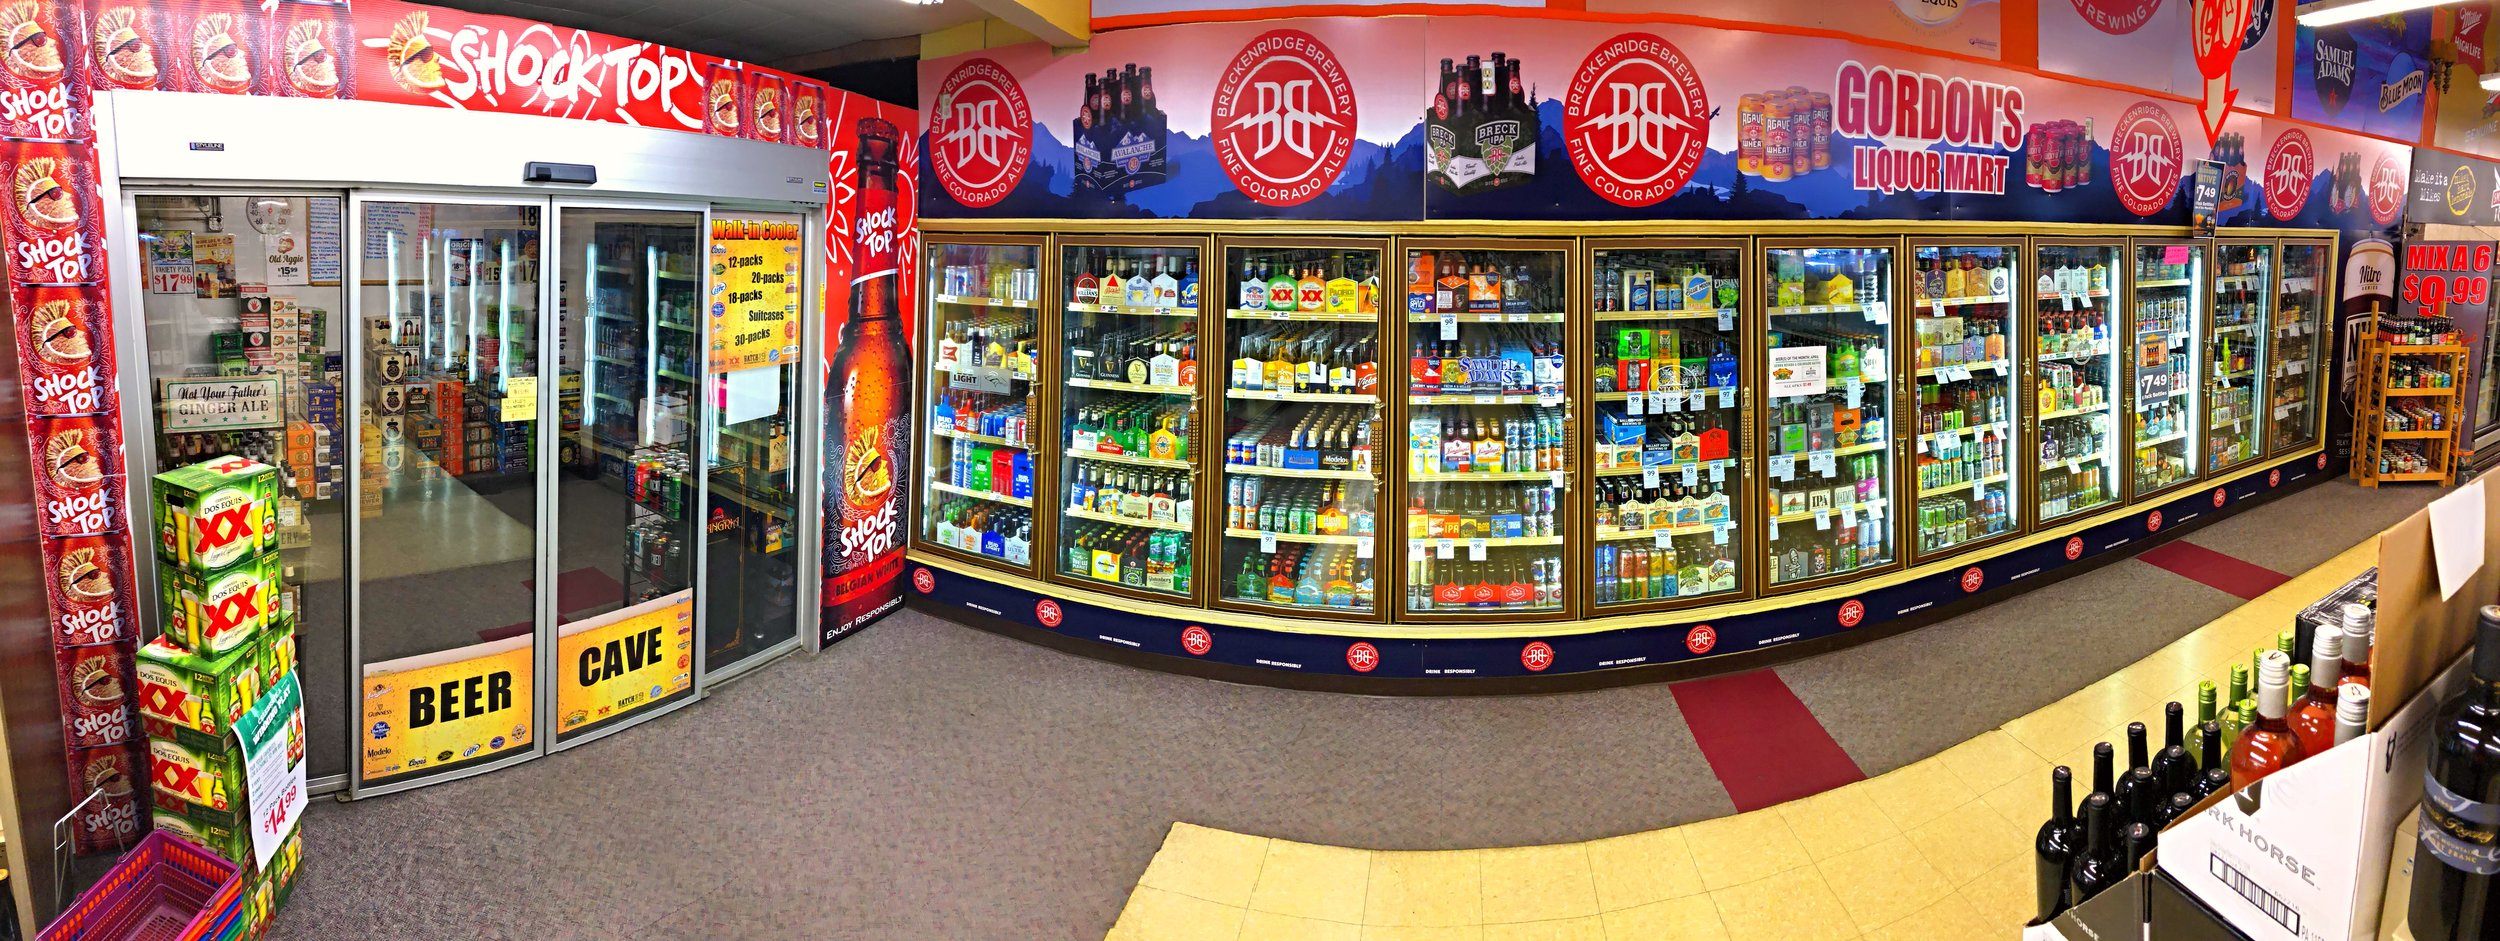 WE CARRY A WIDE ARRAY OF BEER:    CRAFT, DOMESTIC & IMPORTED